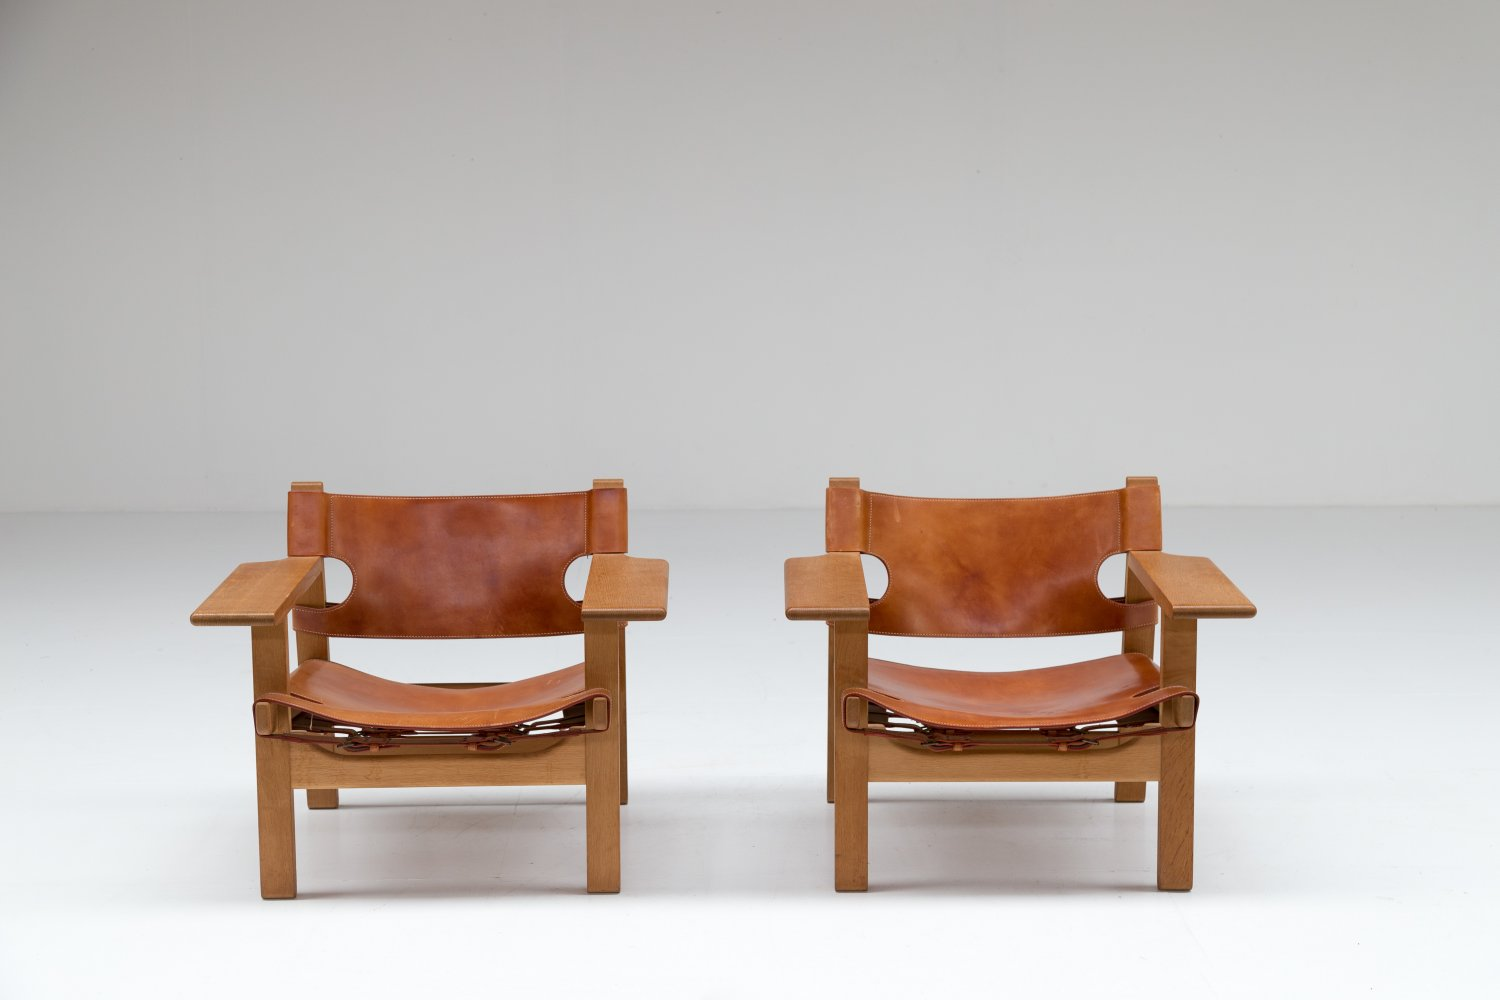 Pair of Spanish Chairs by Borge Mogensen